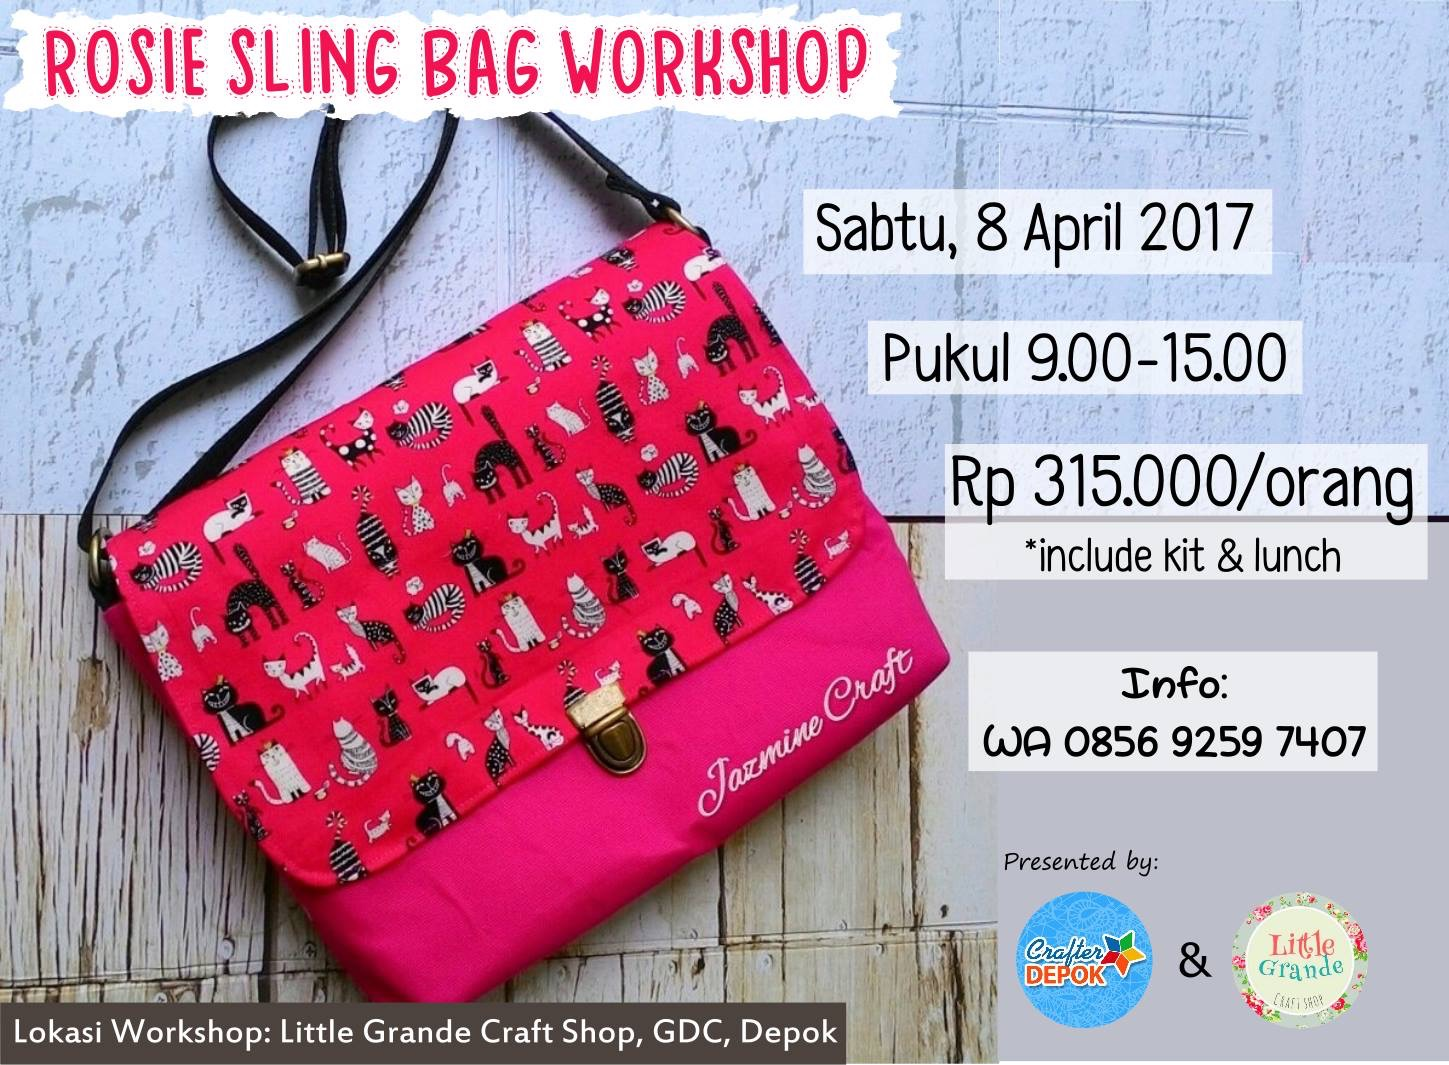 Rosie Sling Bag Workshop